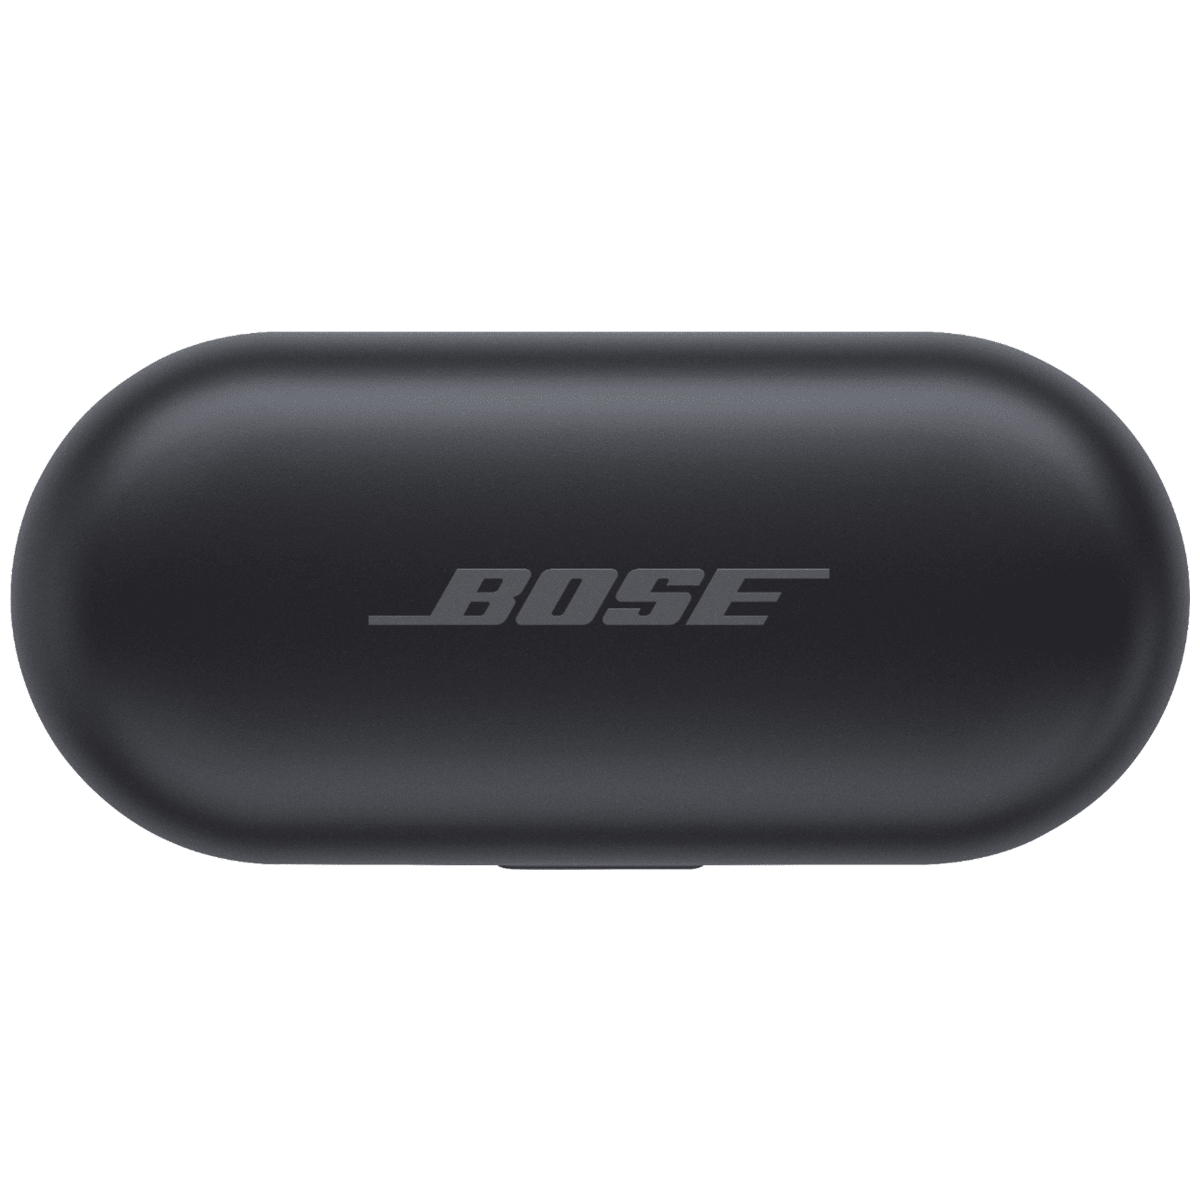 Bose Sport In-Ear Truly Wireless Earbuds with Mic (Bluetooth 5.0, Weather and Sweat Resistant, 805746-0010, Triple Black)